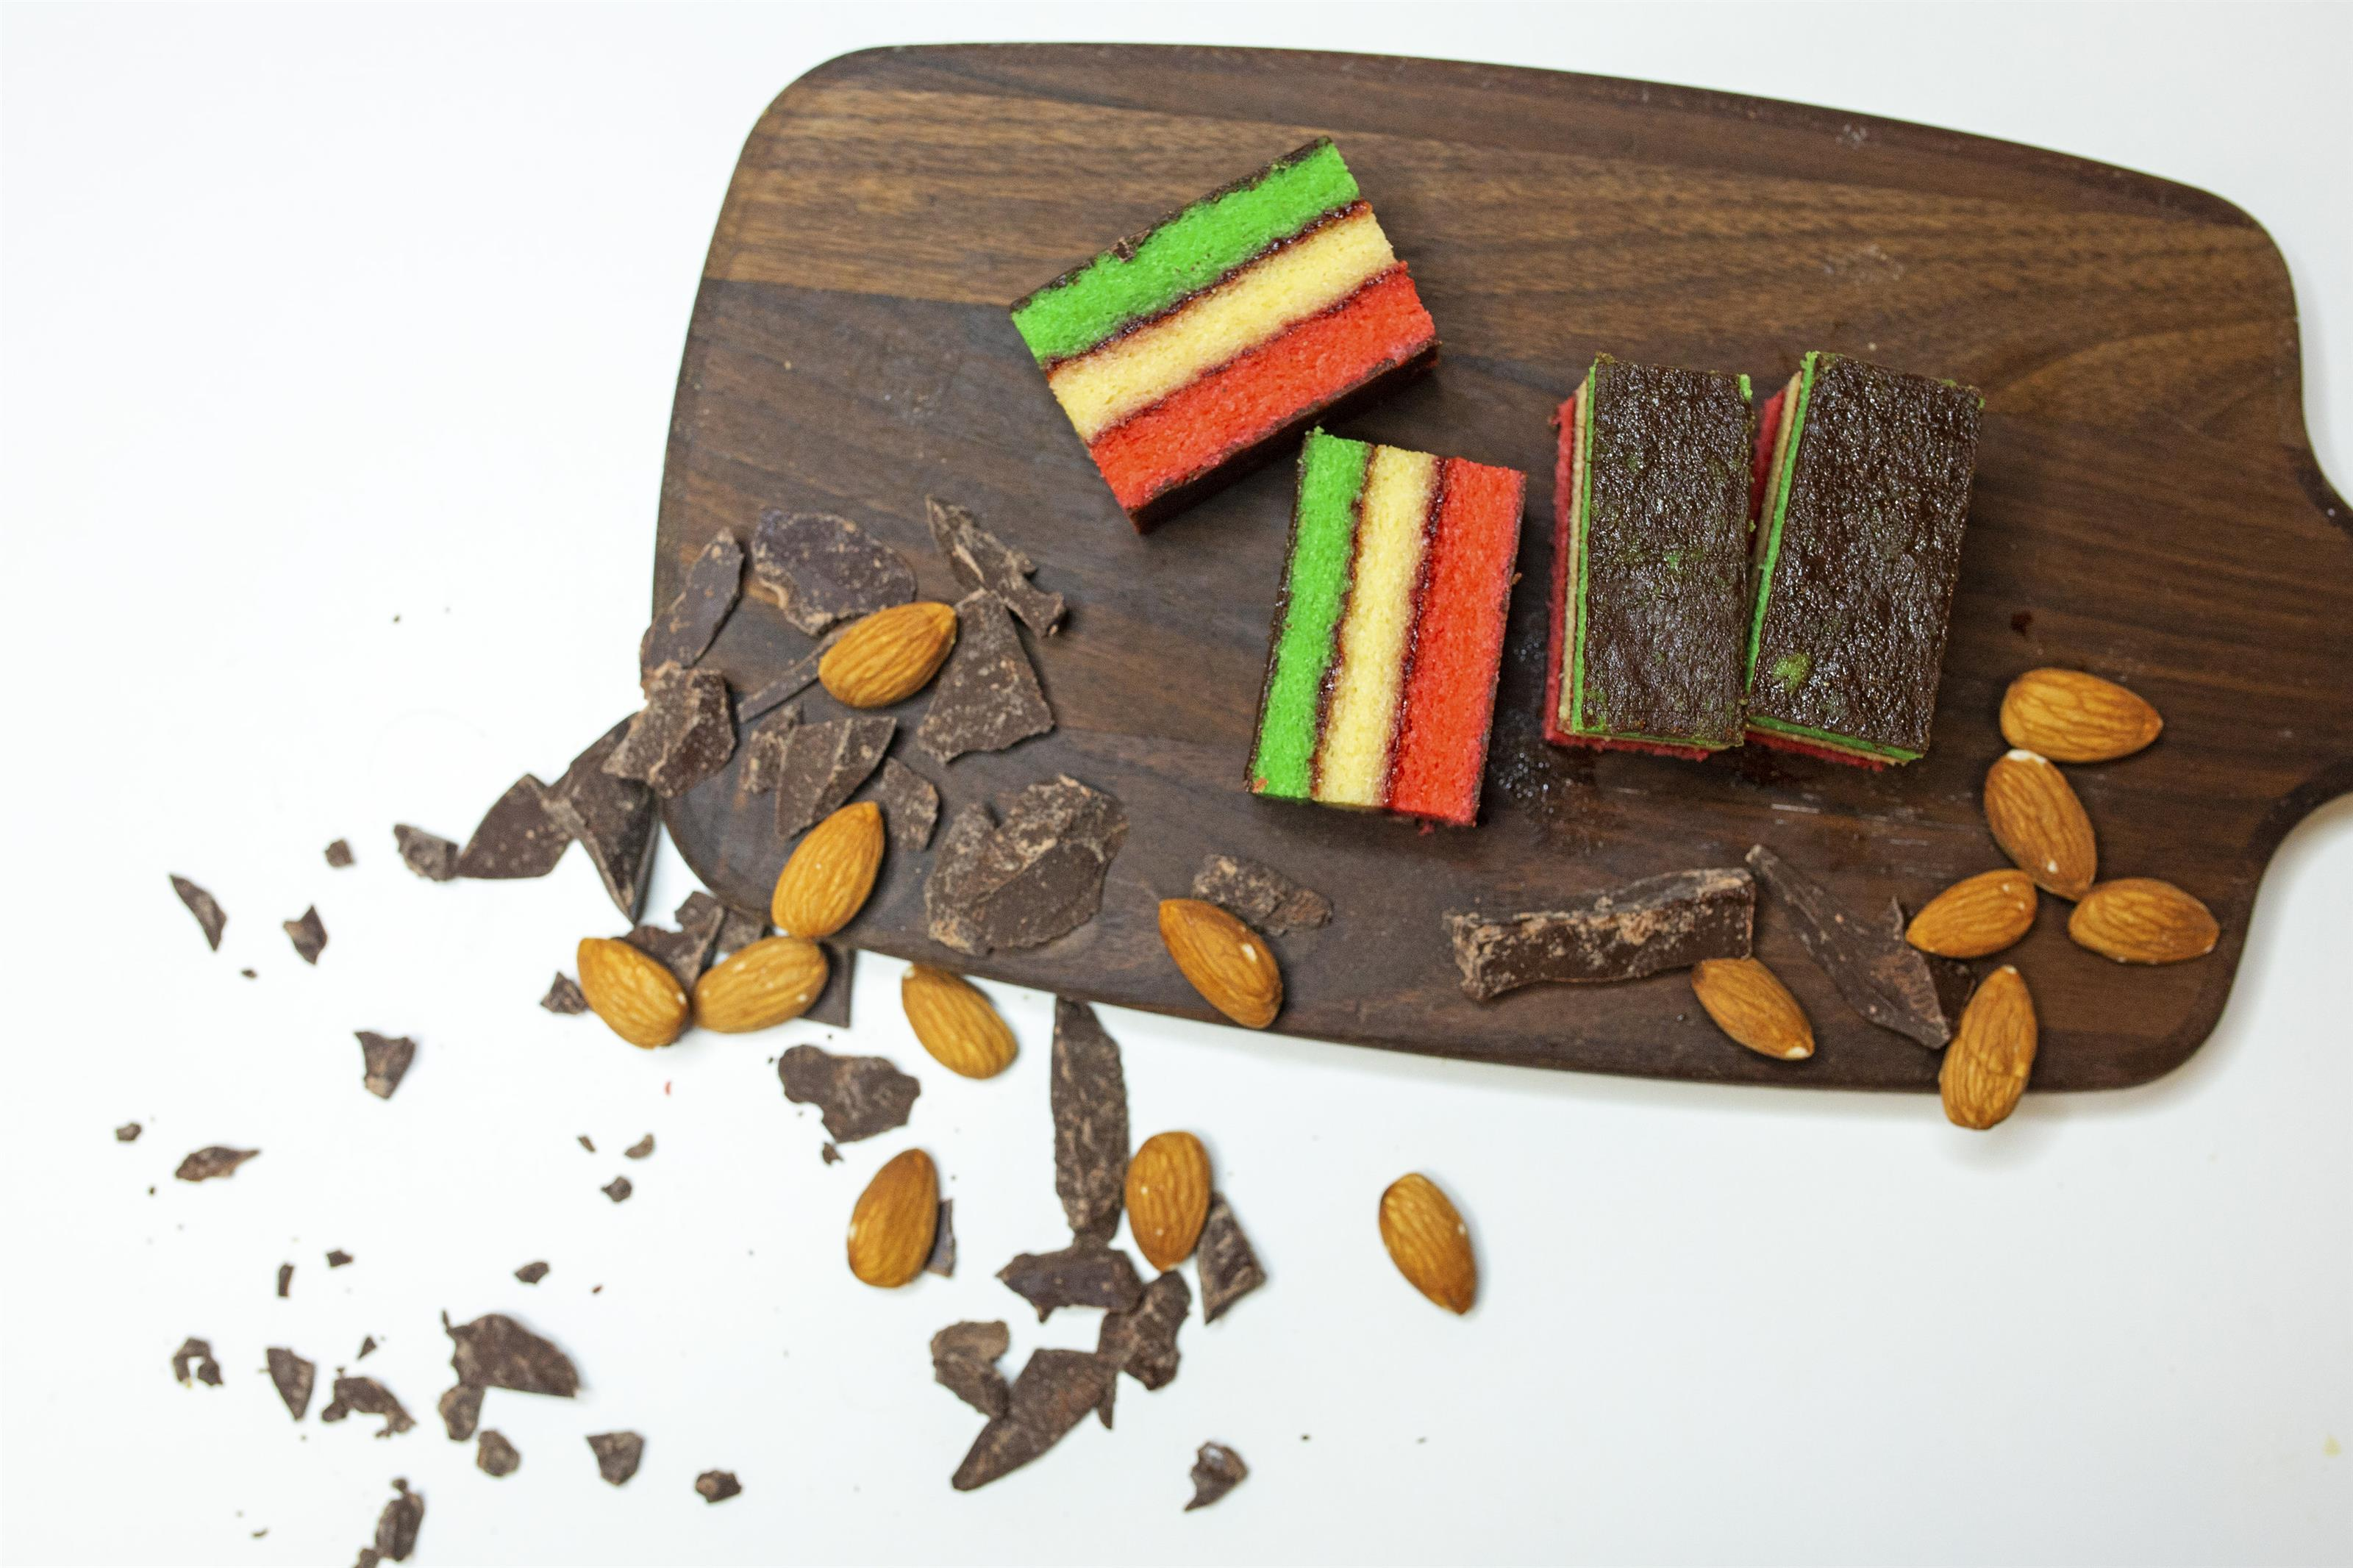 rainbow cookies on a wood board with chocolate pieces and almonds